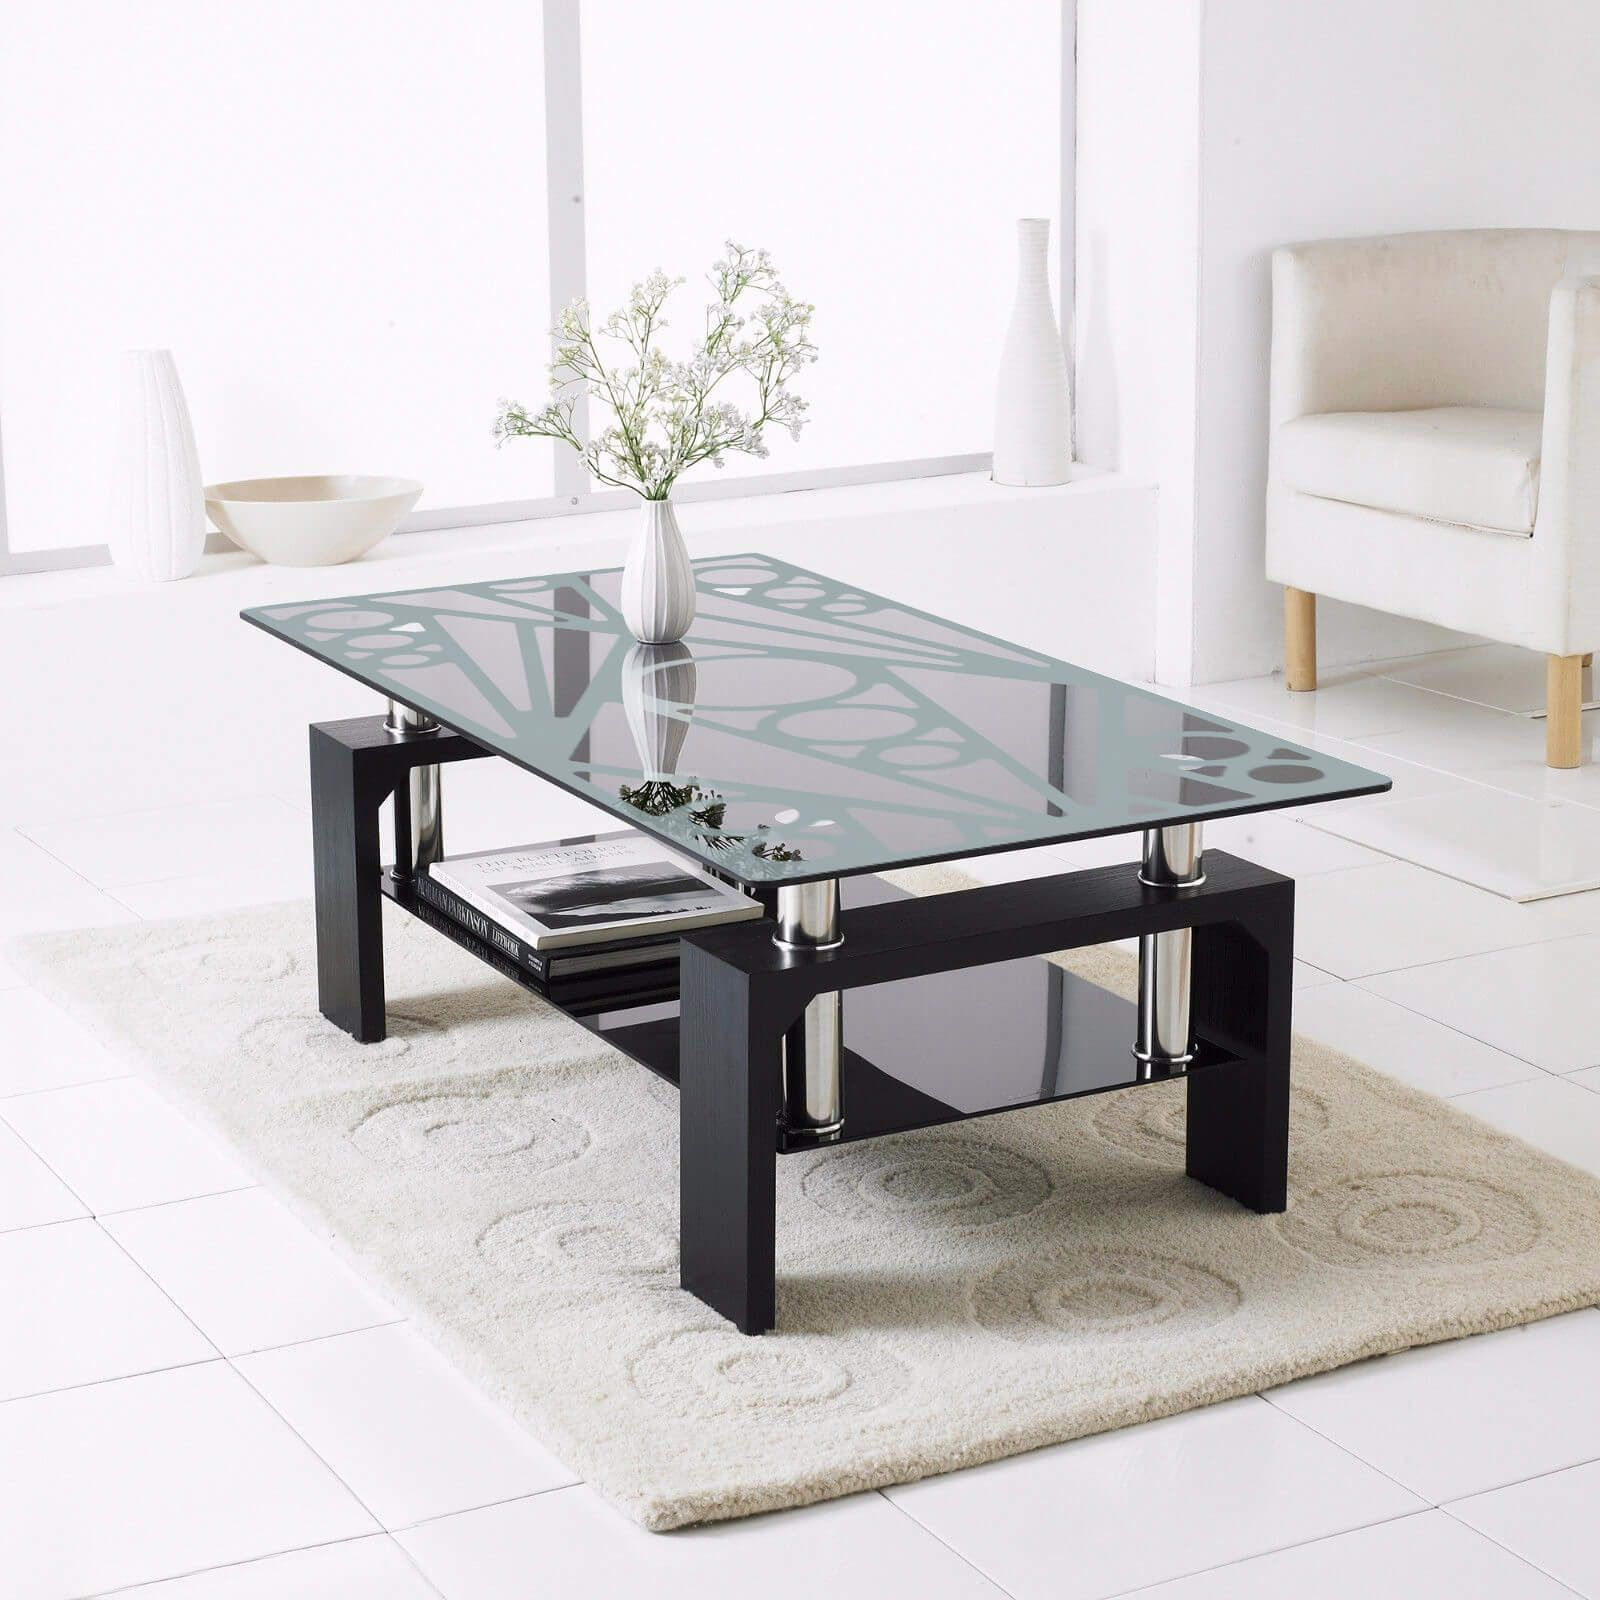 Etching Designer Glass Dining Table Top Fgdted Perabot Coffee Table Black Glass Coffee Table Living Room Table [ 1600 x 1600 Pixel ]